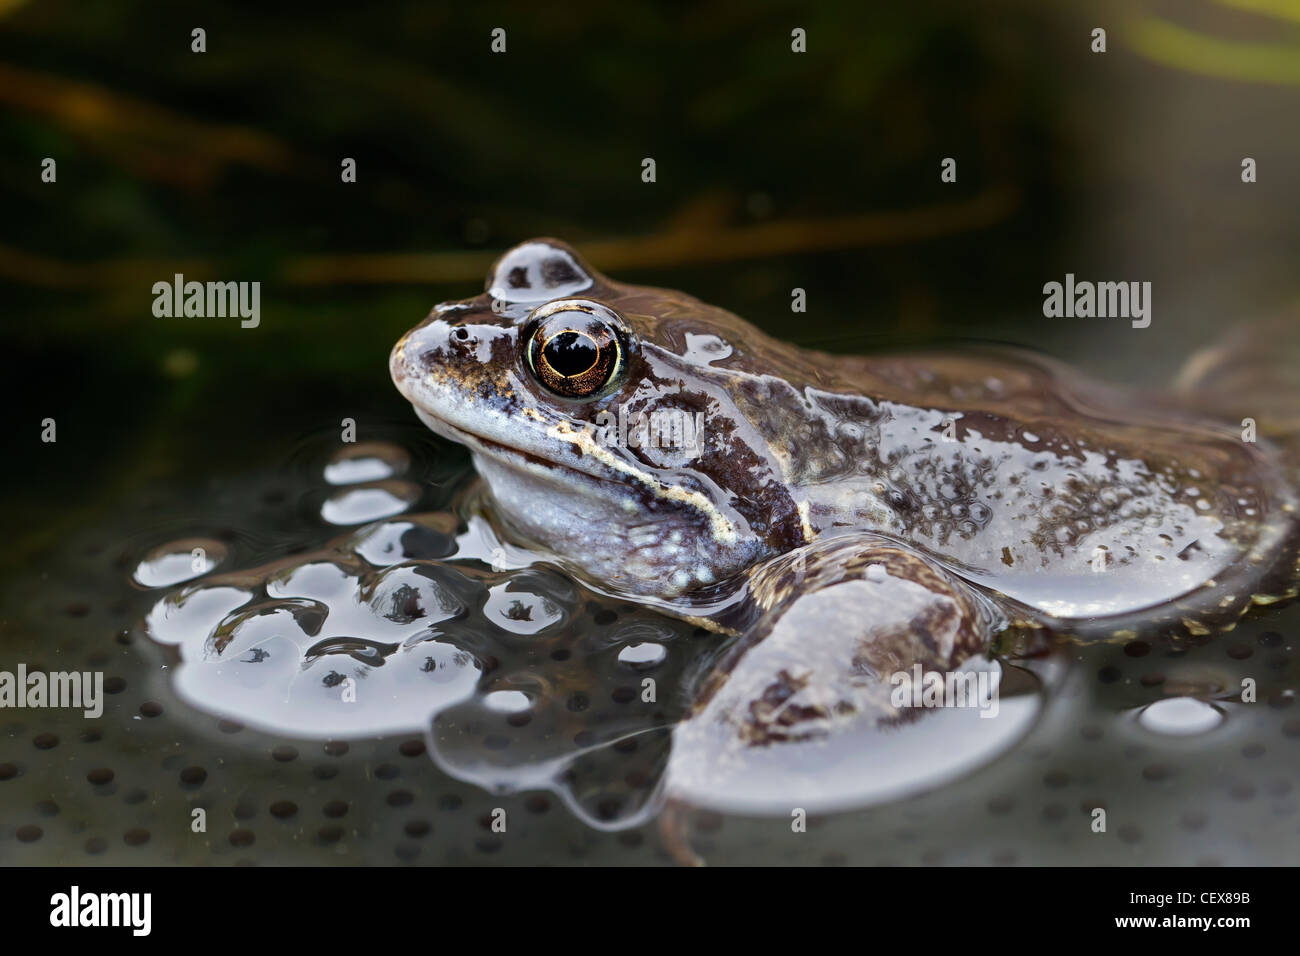 European Common Brown Frog (Rana temporaria) amongst frogspawn in pond, Germany - Stock Image